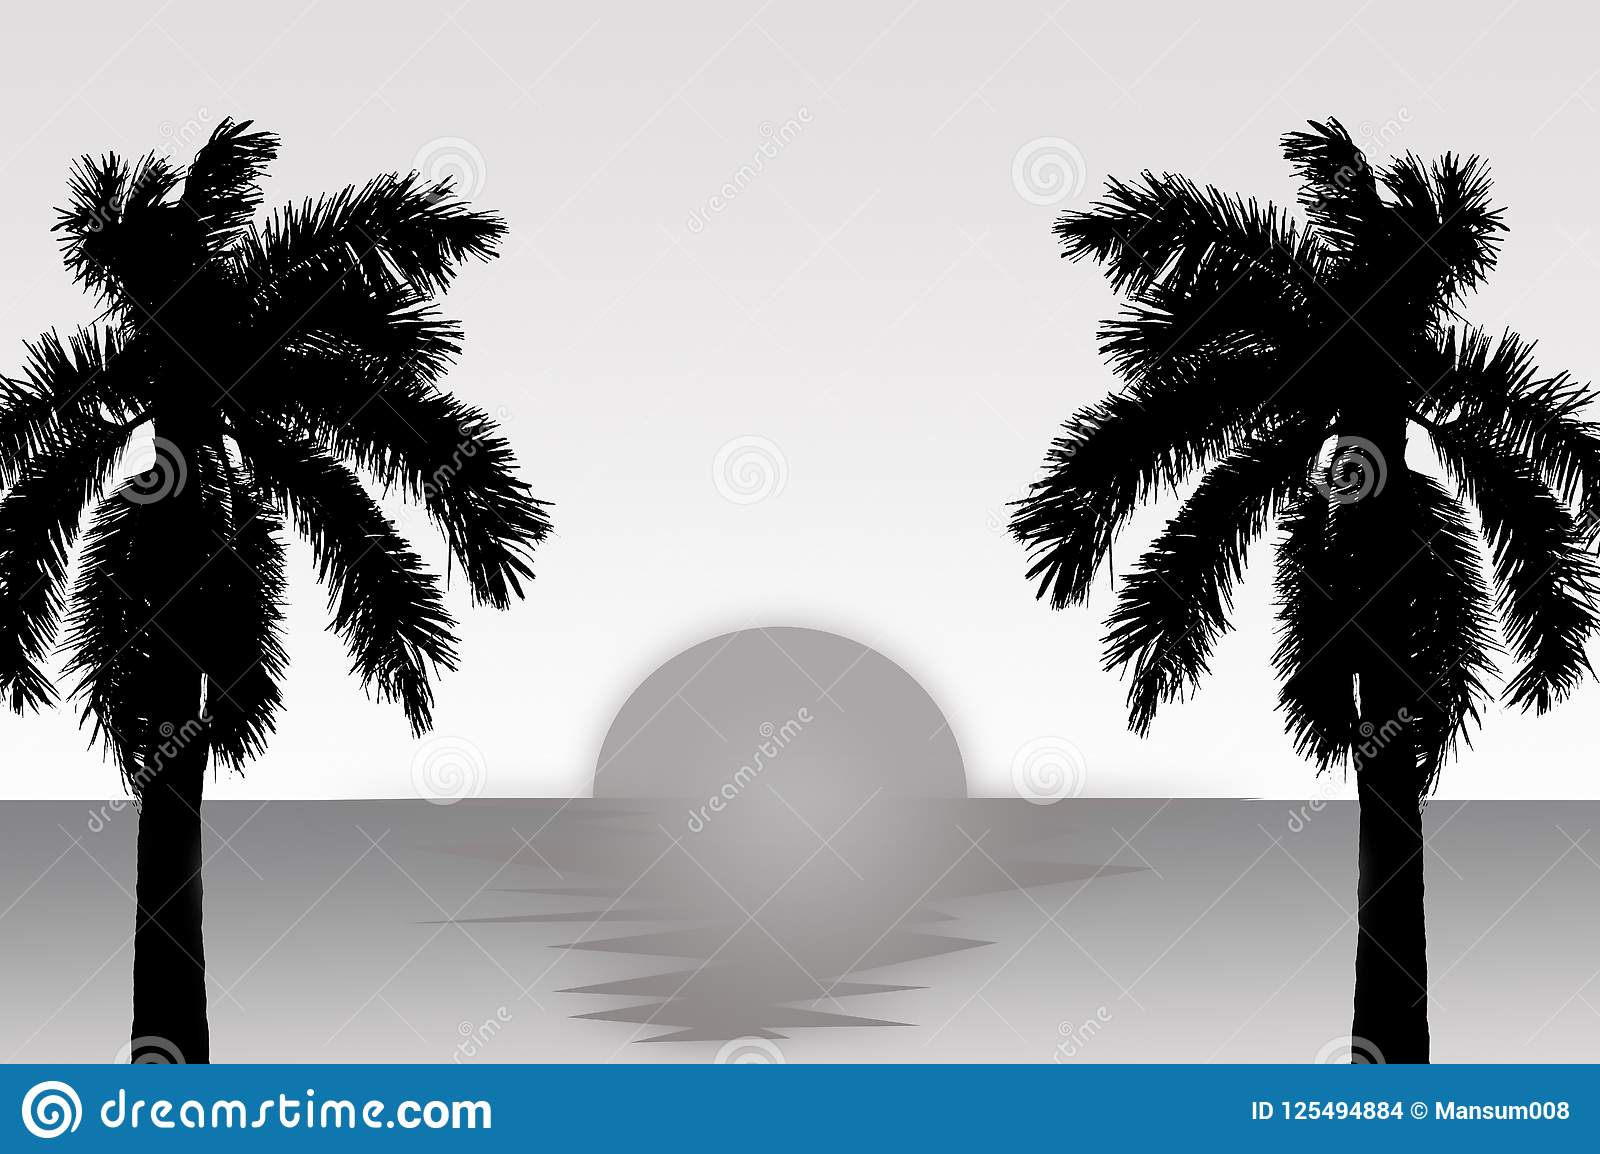 Black White Coconut Tree Stock Illustrations 6 177 Black White Coconut Tree Stock Illustrations Vectors Clipart Dreamstime